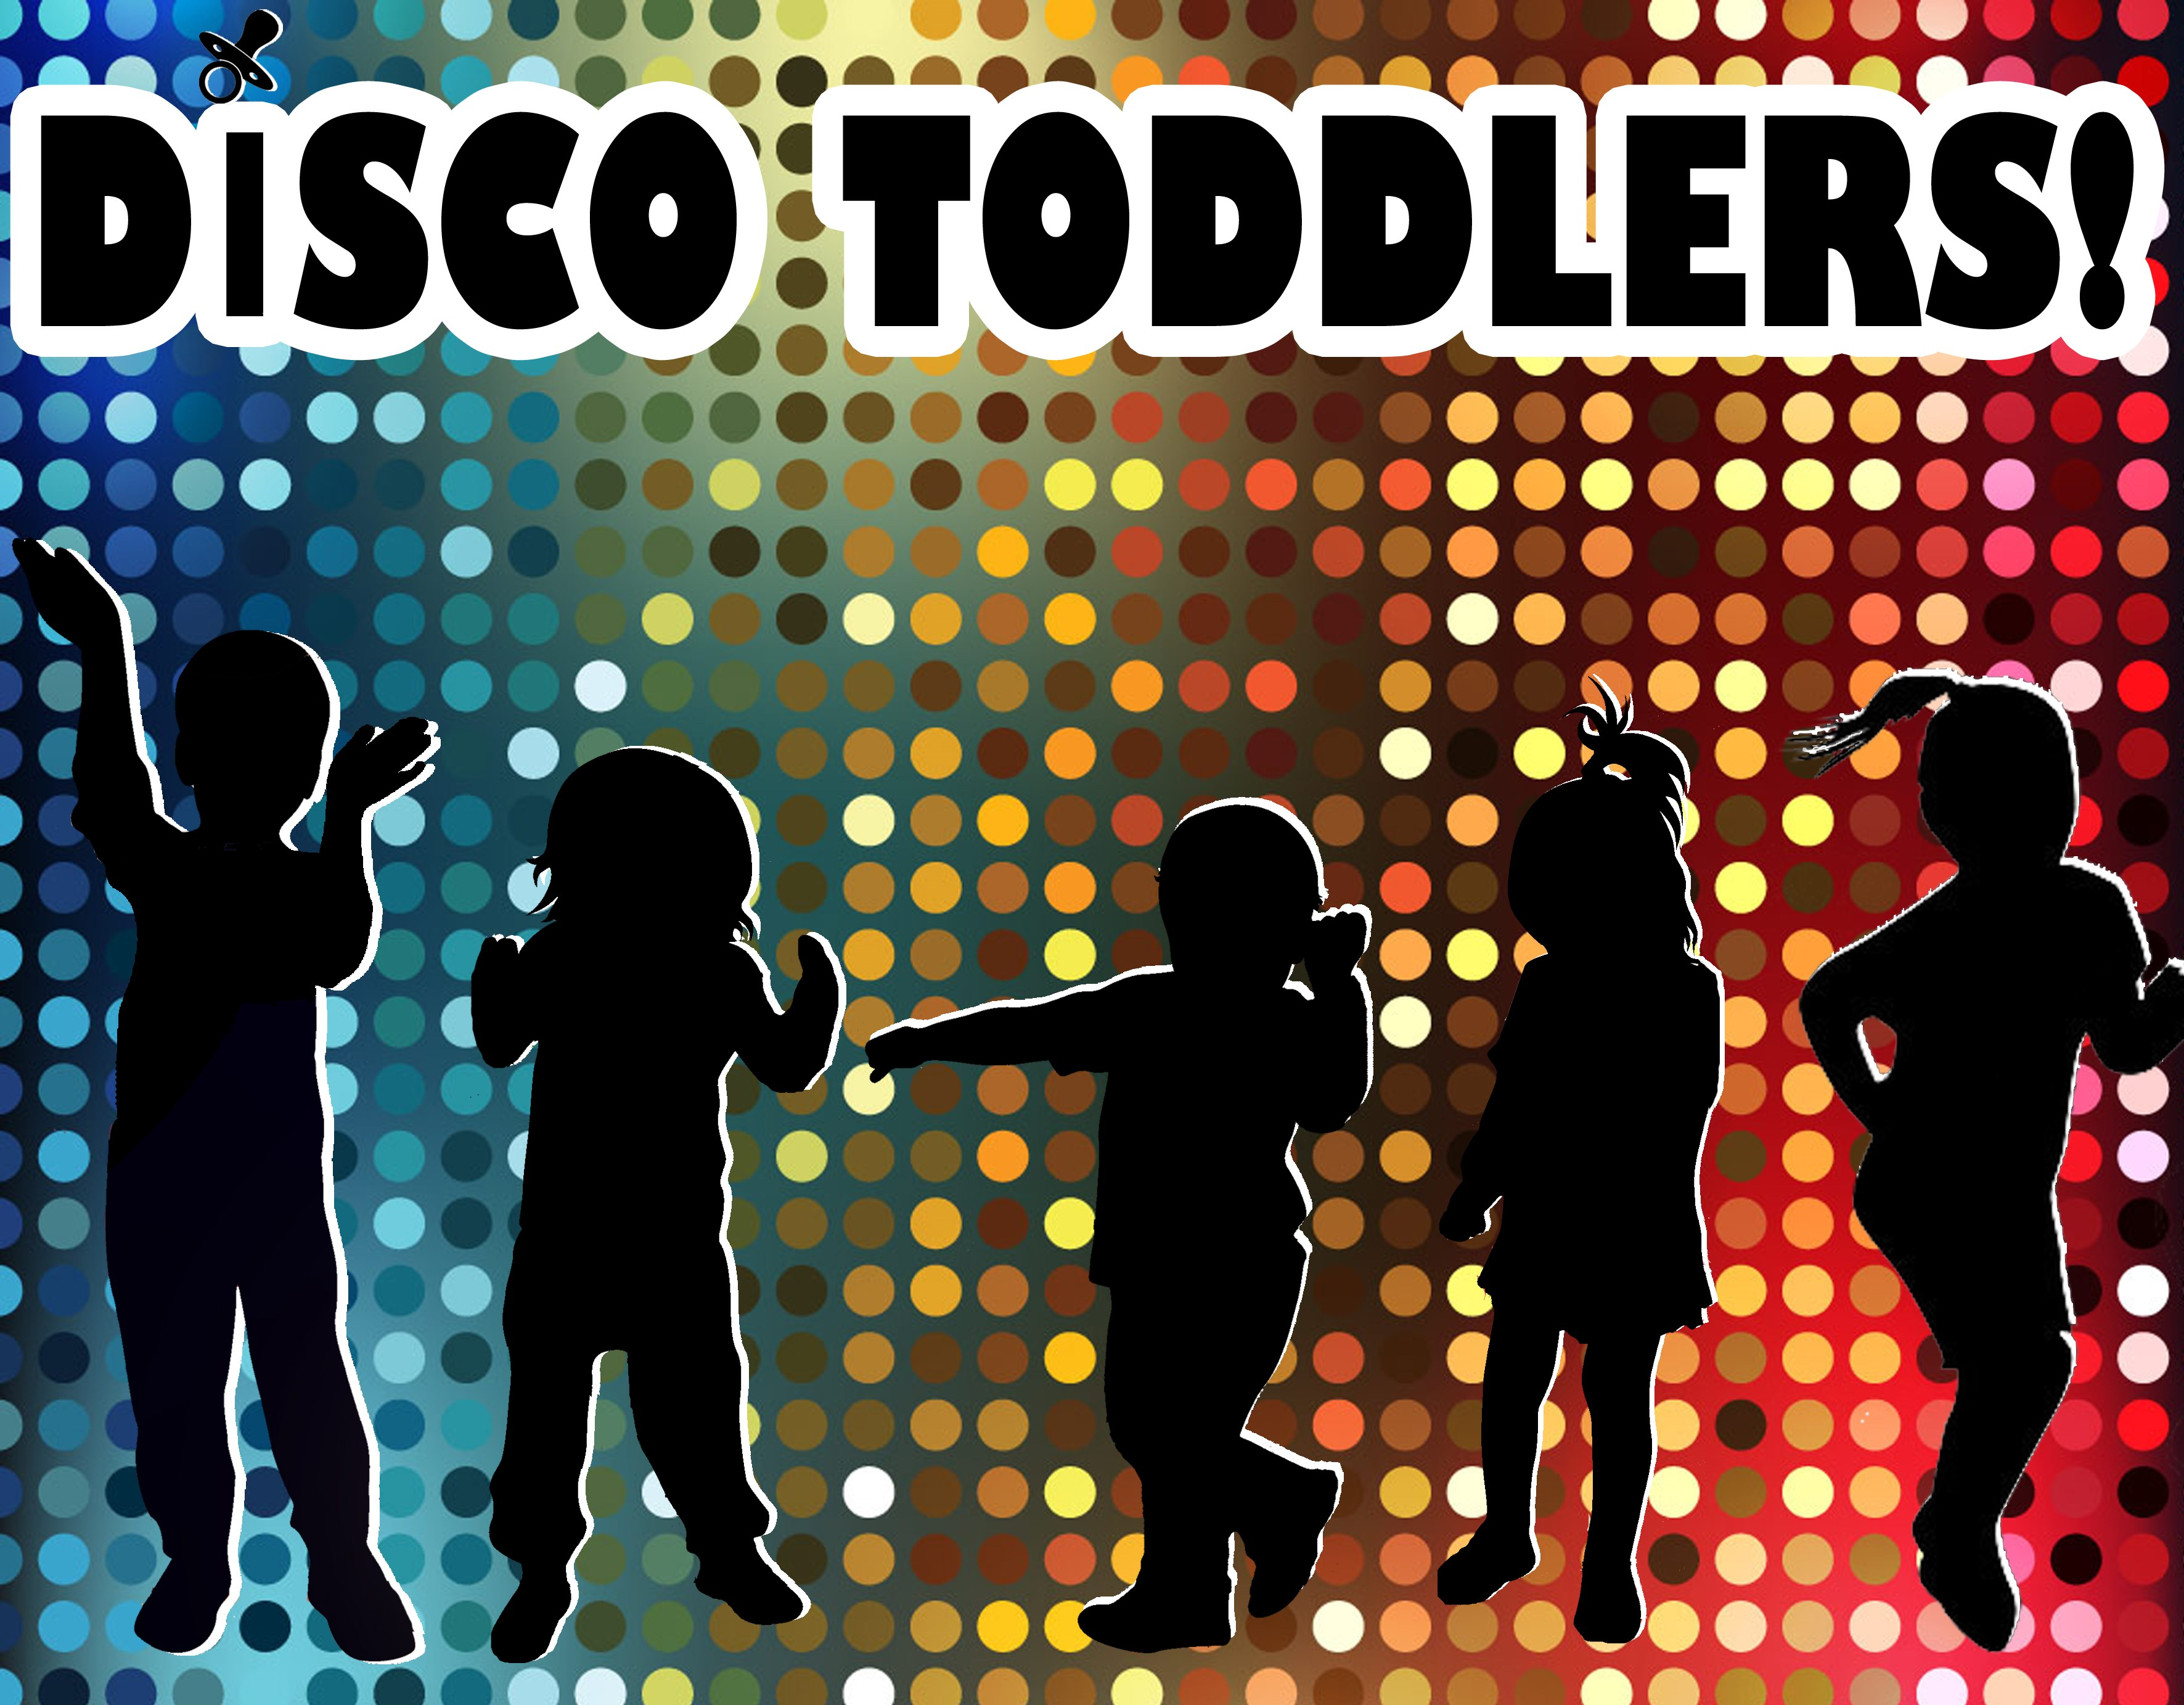 Disco Toddlers Family Edition!